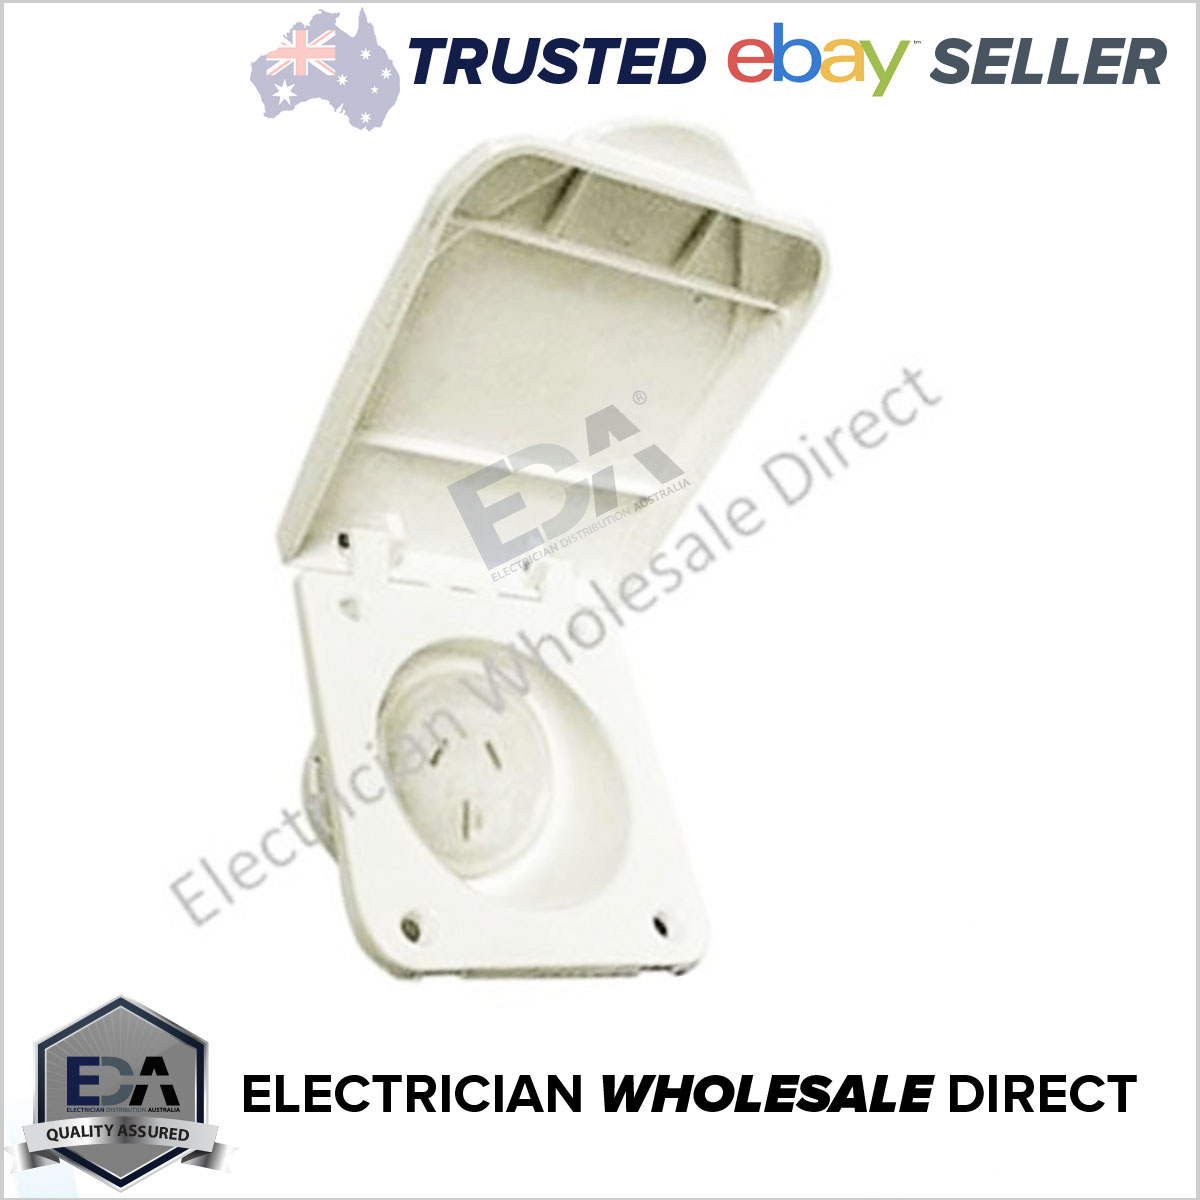 15 Amp Power Outlet Caravan Motor Home And Rv 240v Socket Electrical Wiring Standards 100 Quality Assured Gear Fully Tested To Australian As 3123 5 Year Warranty All Products